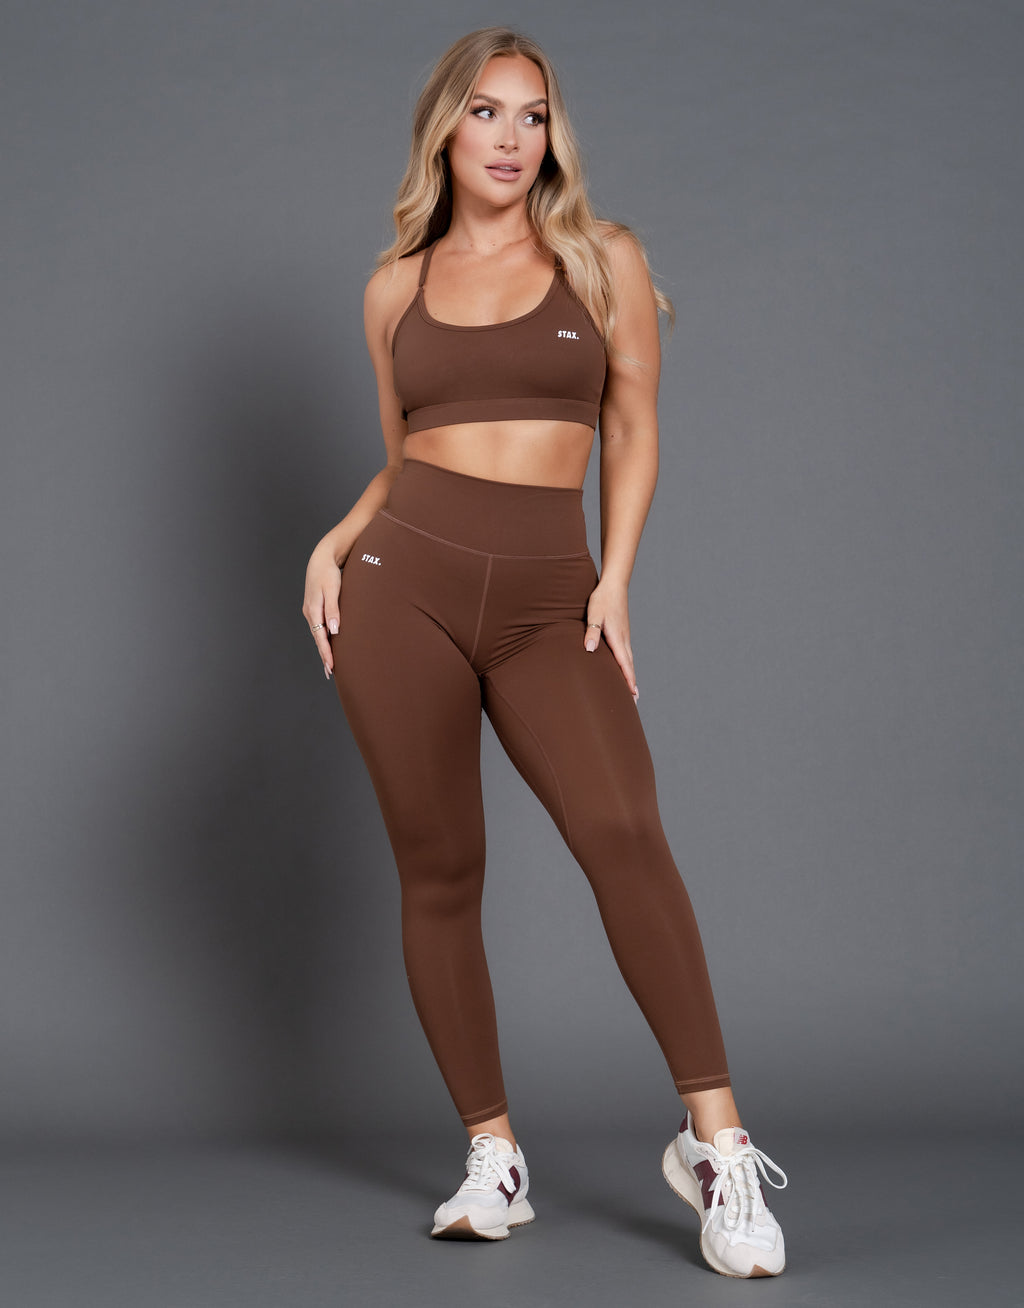 STAX. Originals Tights Full Length - Raw Umber (Brown)